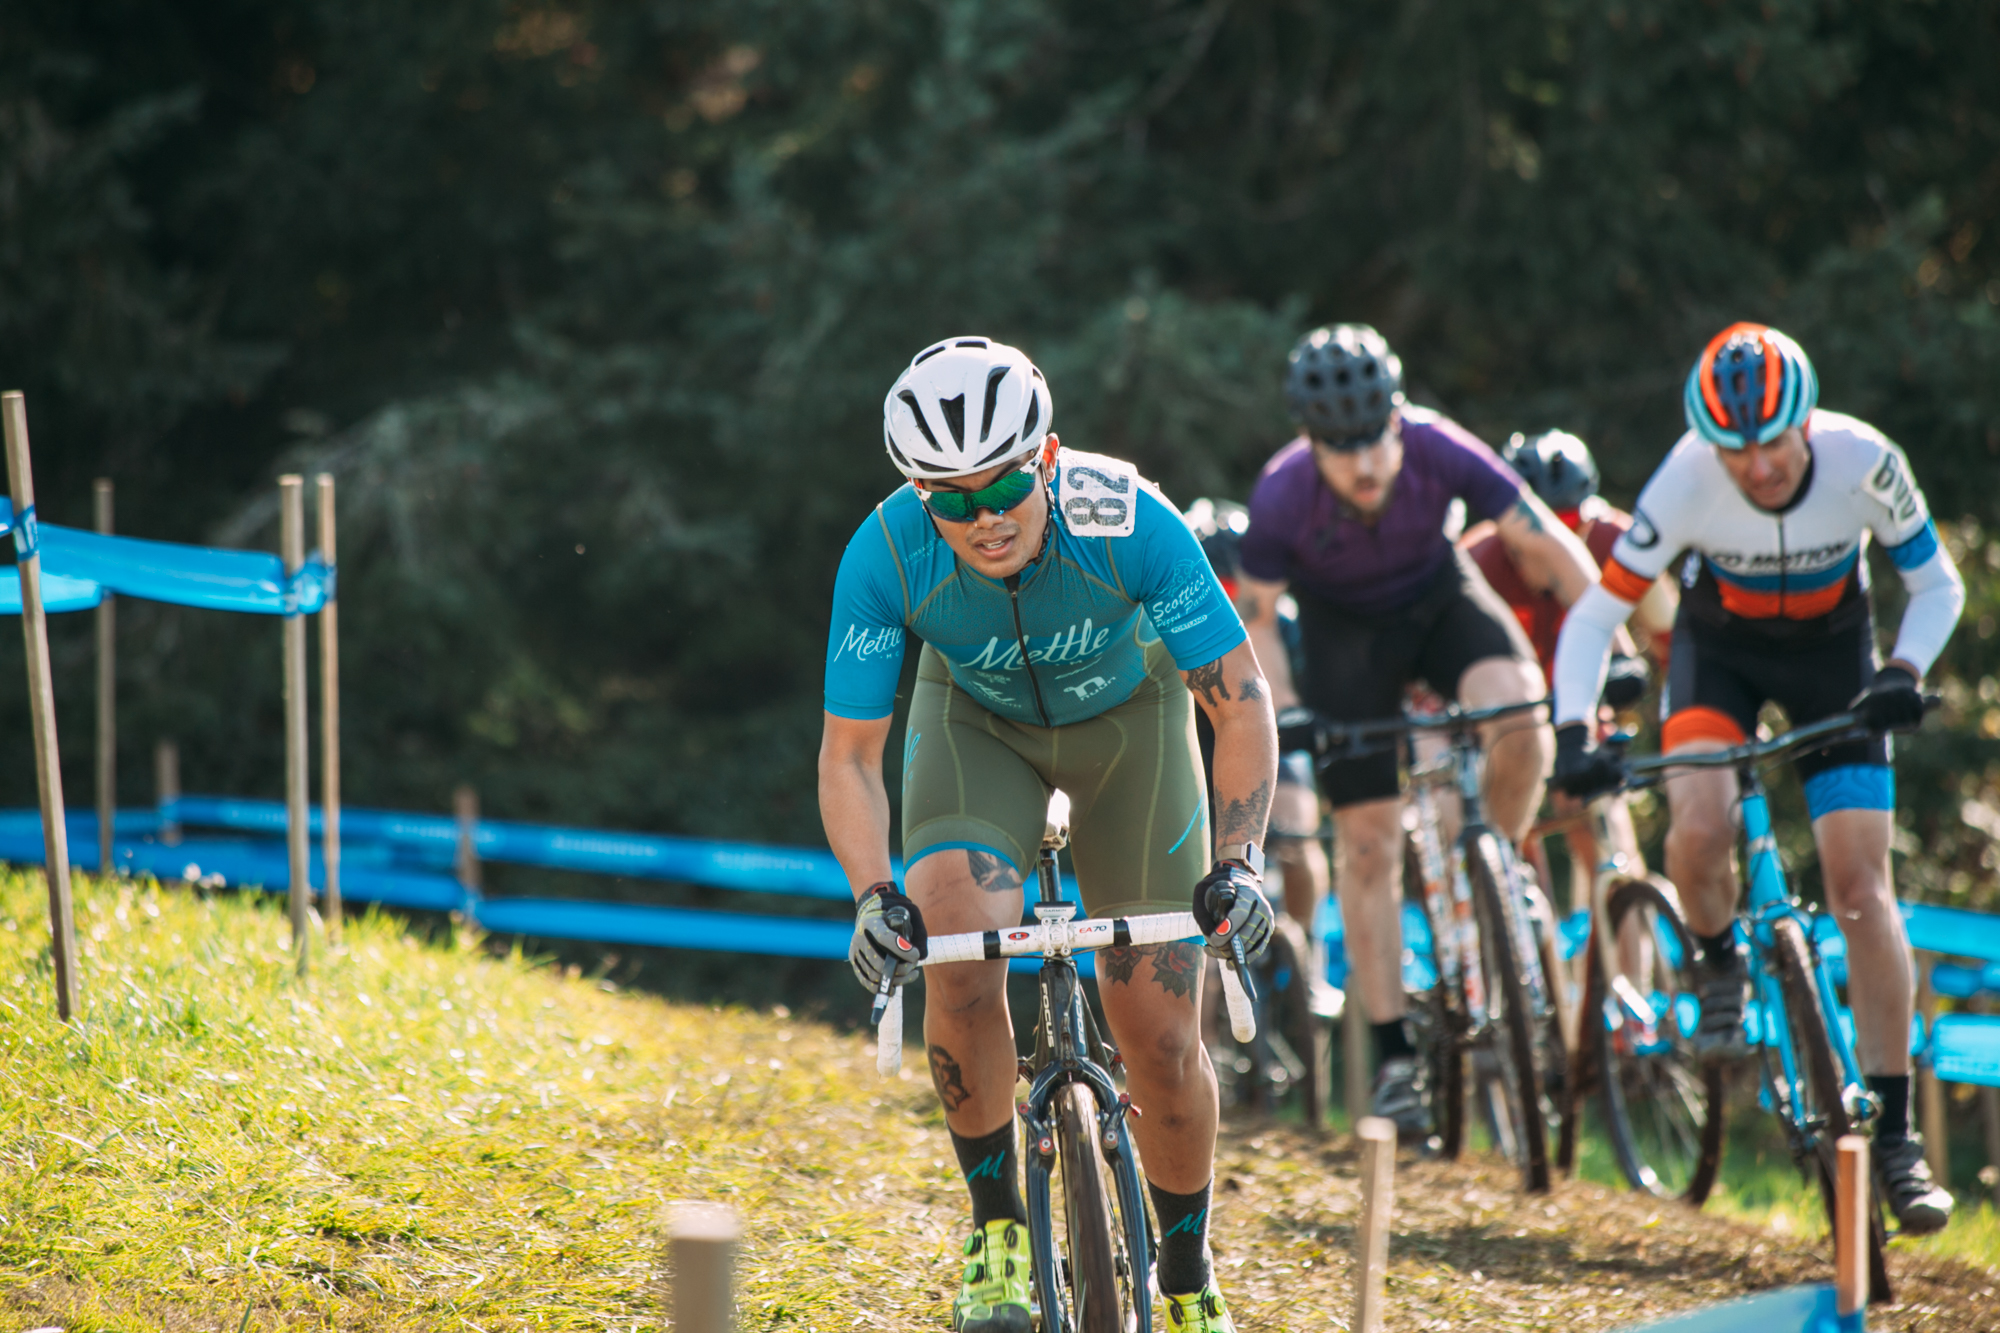 Cyclocross18_CCCX_RainierHS-96-mettlecycling.jpg